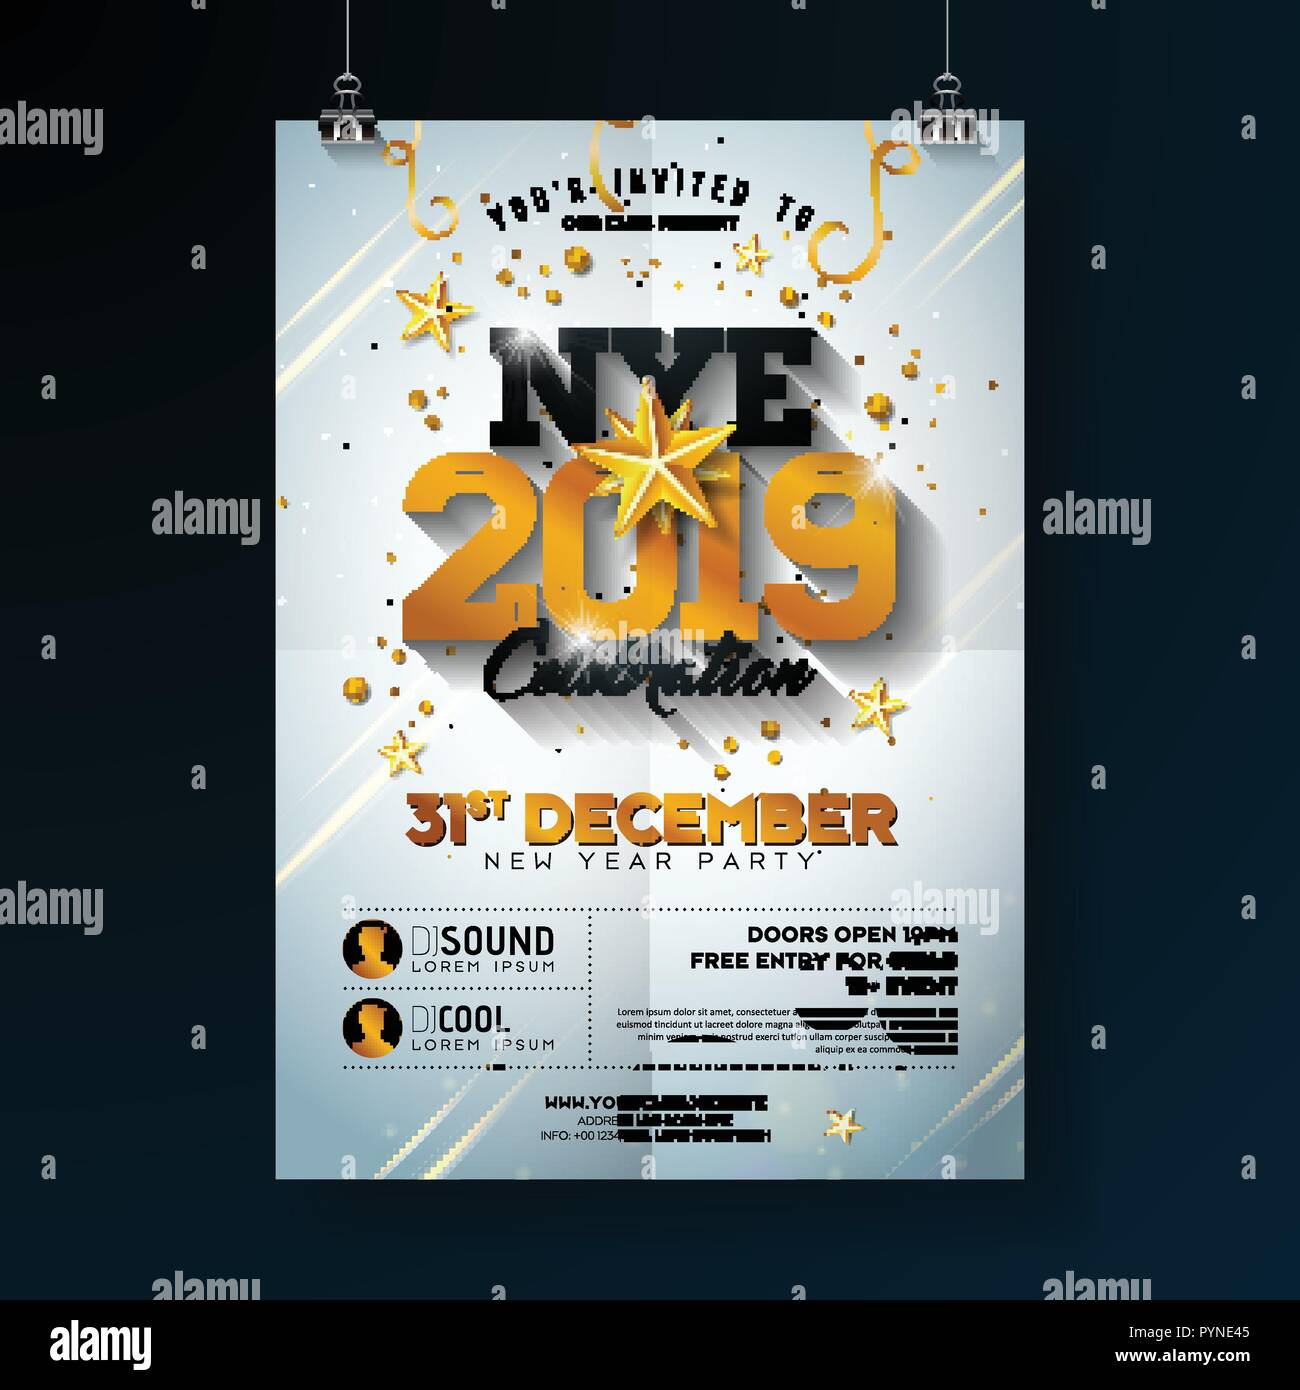 New Year Poster Template | 2019 New Year Party Celebration Poster Template Illustration With